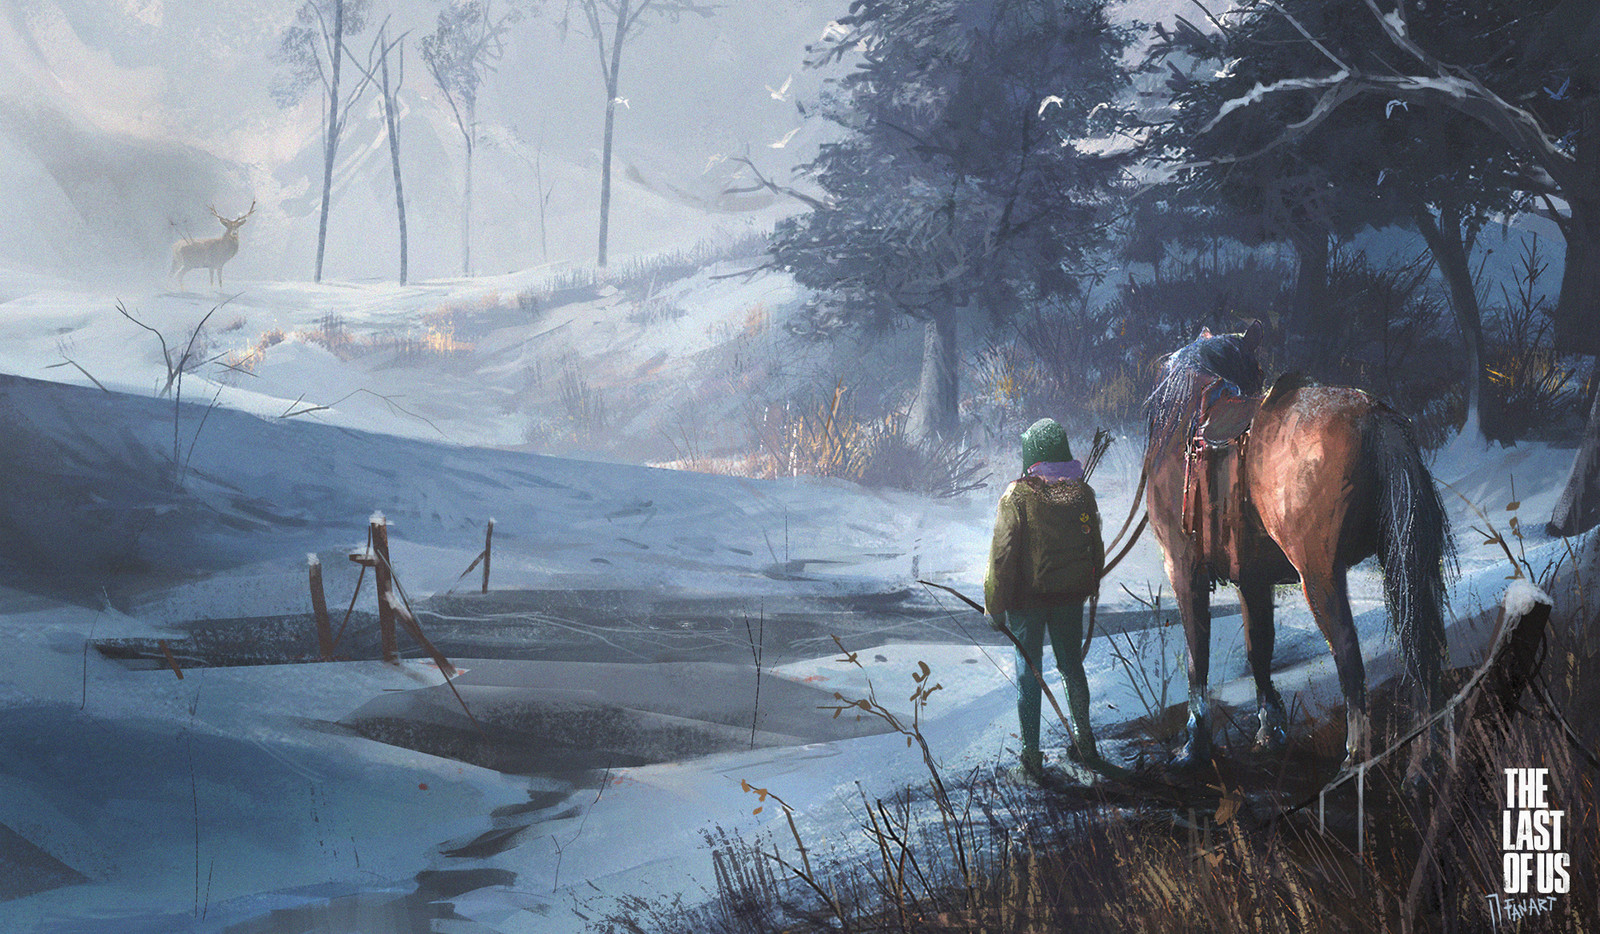 The Last of Us - Frozen